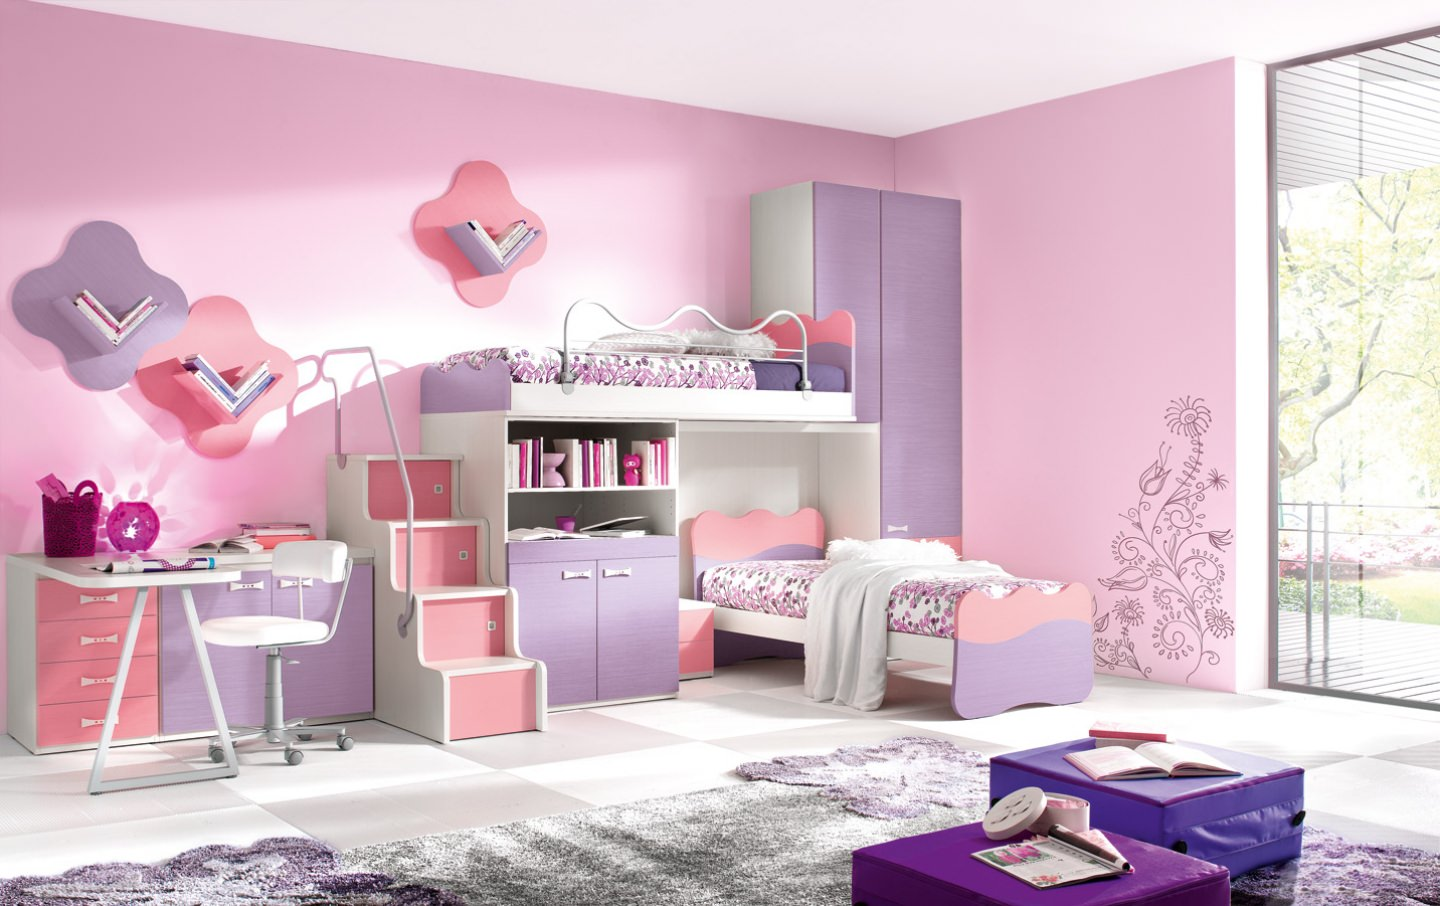 Bedroom wall designs for teenage girls - New Wall Design For Teenage Bedroom